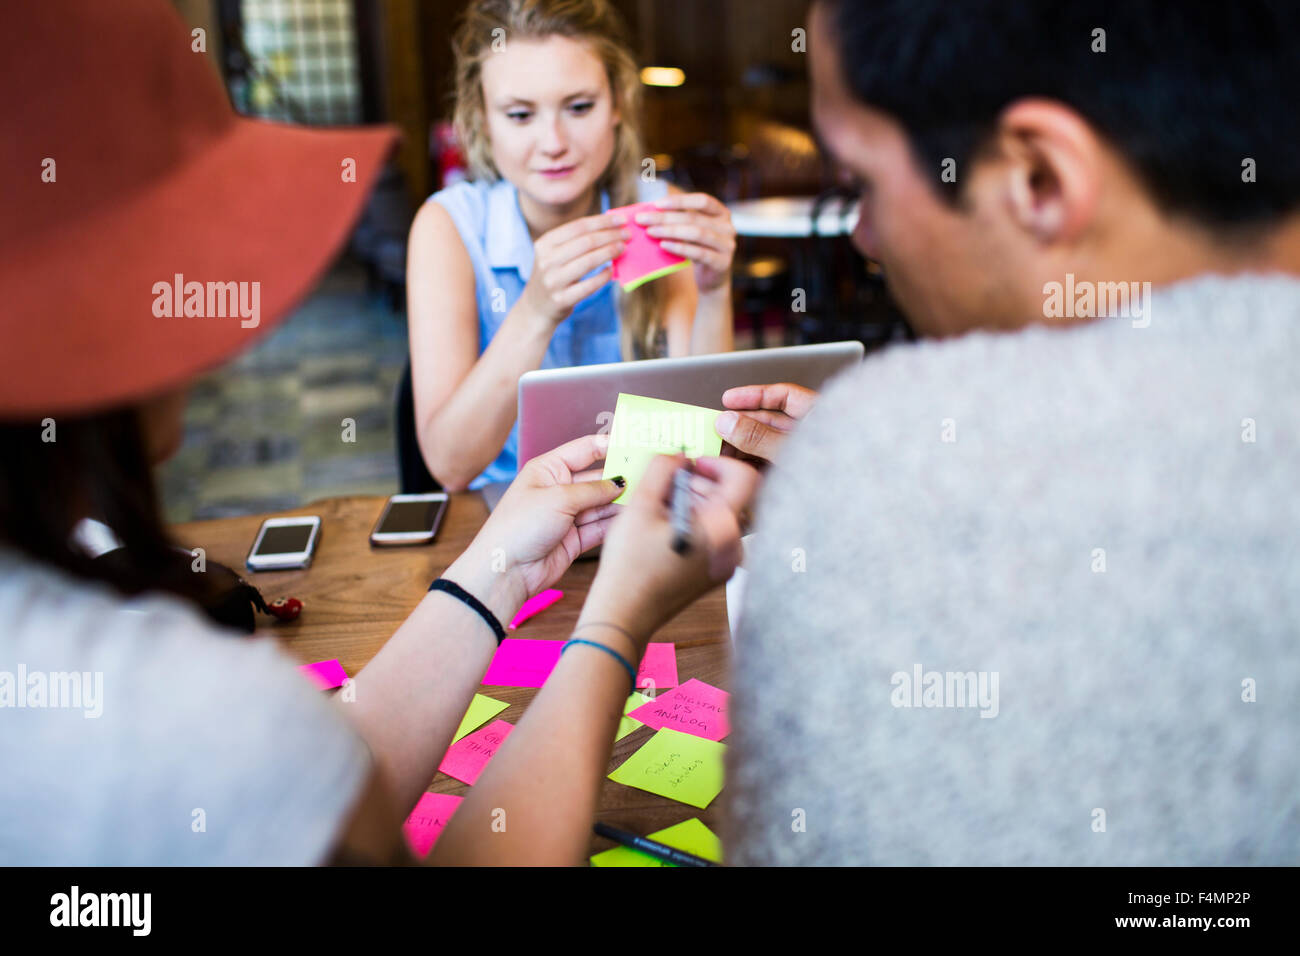 Friends writing on adhesive note while doing freelance work at cafe - Stock Image